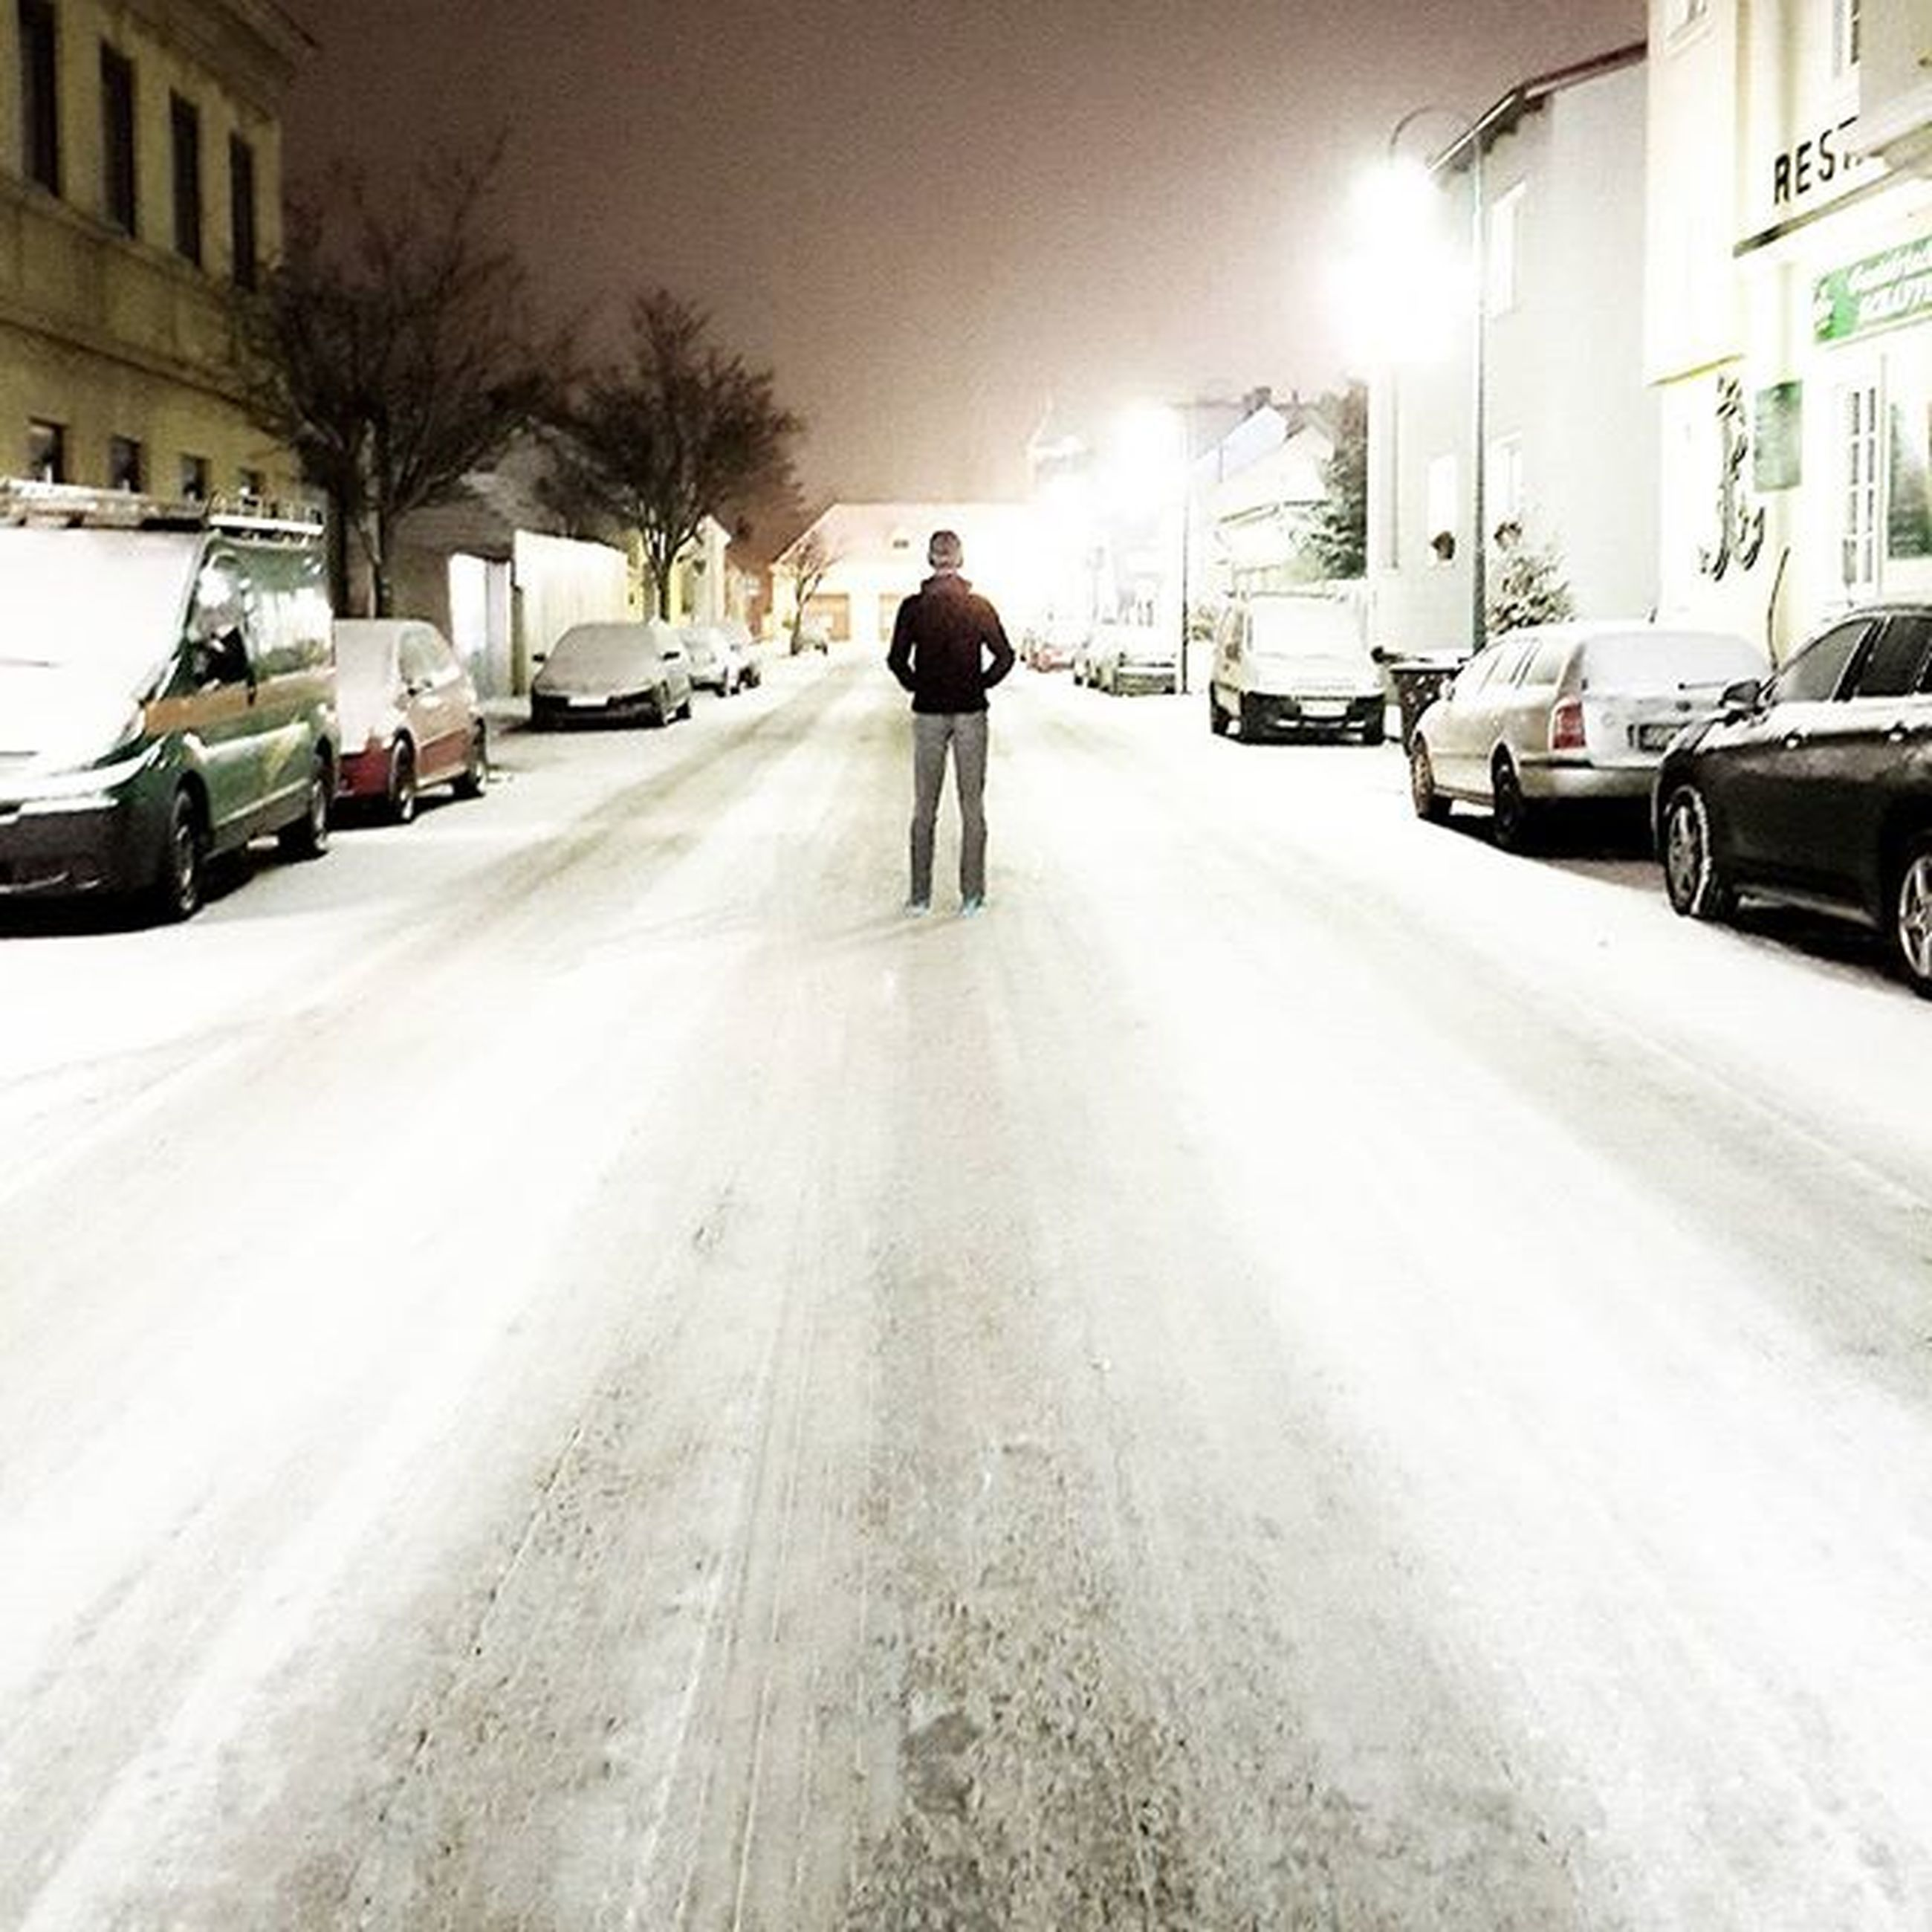 building exterior, snow, winter, street, transportation, the way forward, architecture, cold temperature, walking, full length, built structure, rear view, car, season, city, weather, road, land vehicle